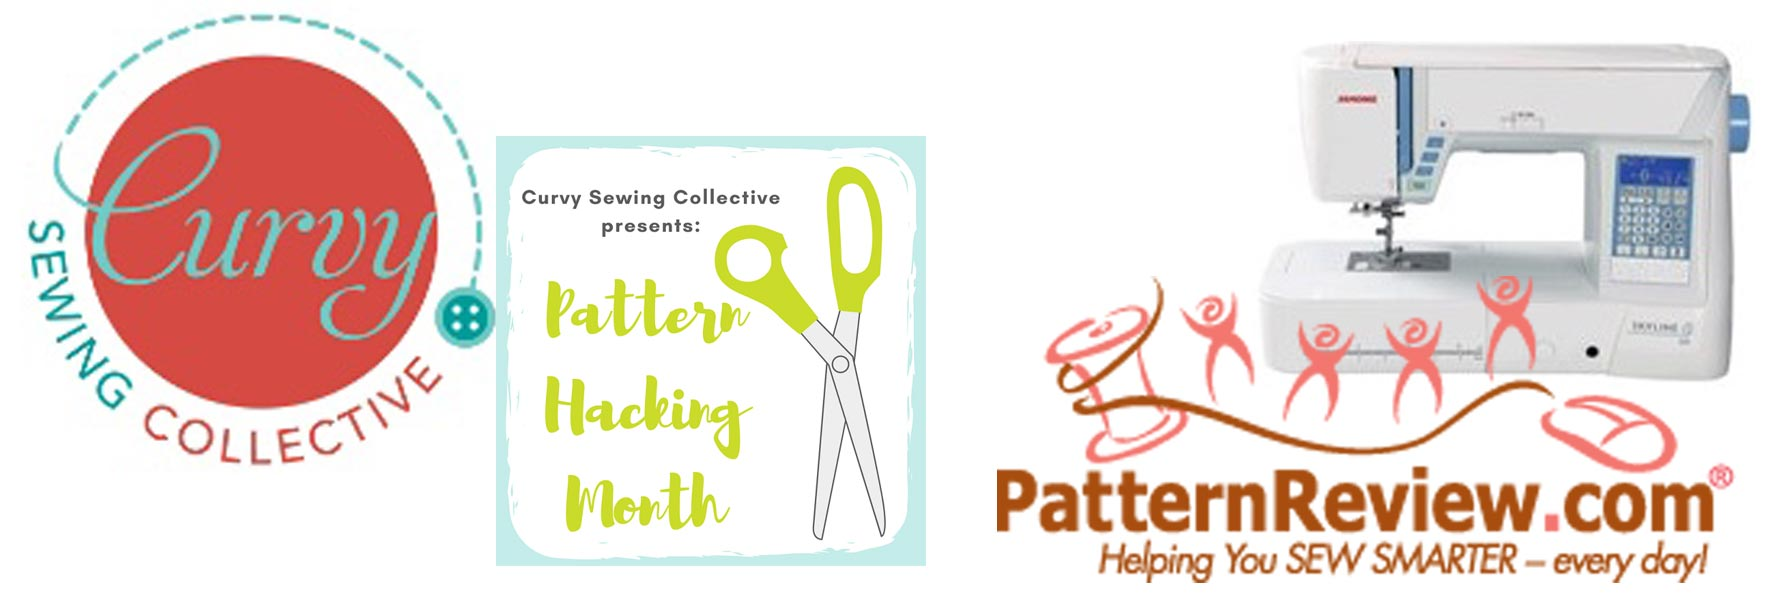 collage of logos and images from Curvy Sewing Collesctive and Sewing Pattern Review